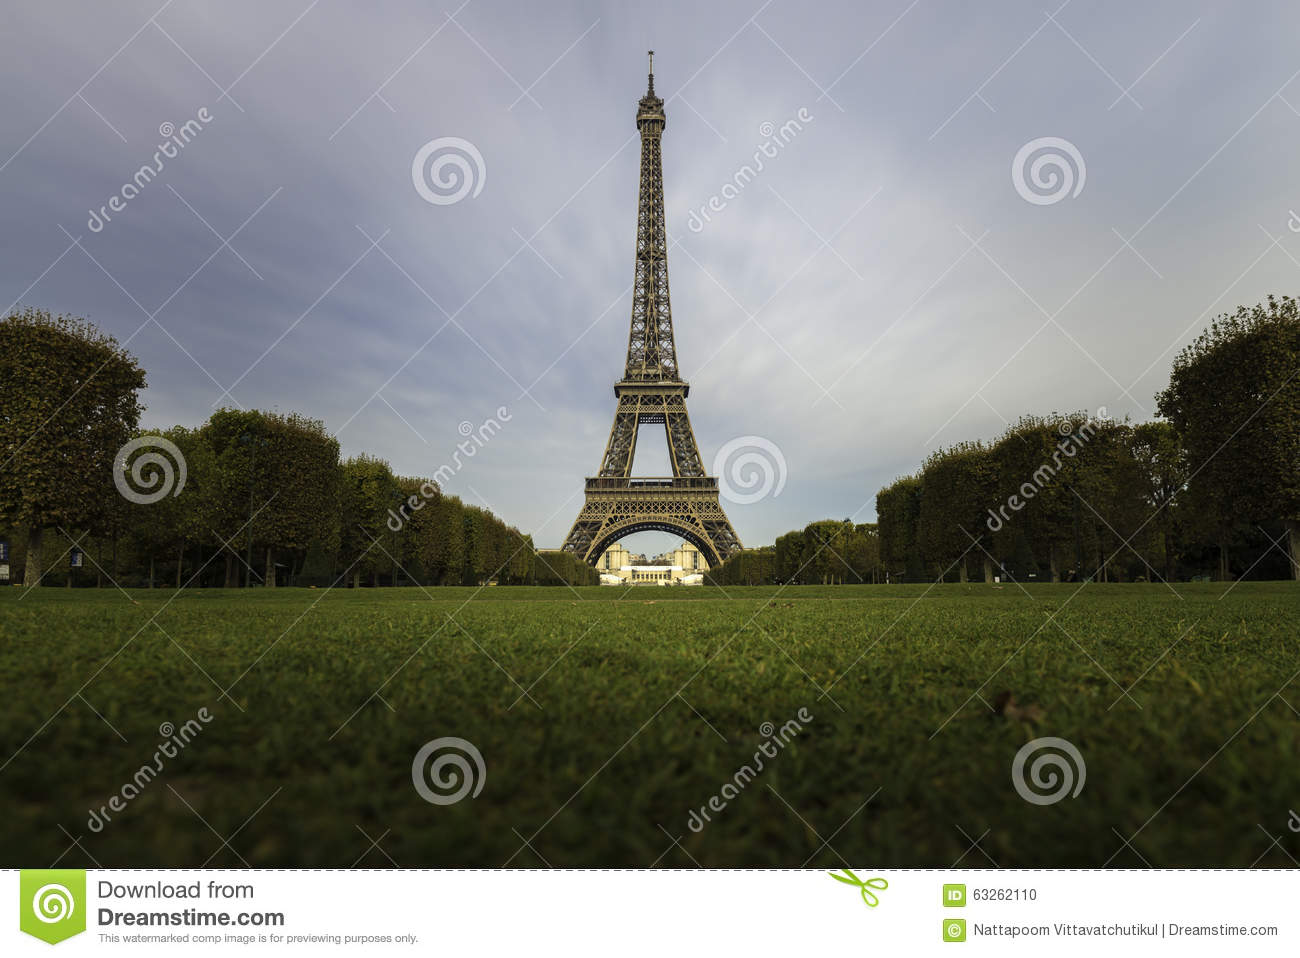 tour eiffel avec la verdure dans le jour clair de ciel photo stock image 63262110. Black Bedroom Furniture Sets. Home Design Ideas